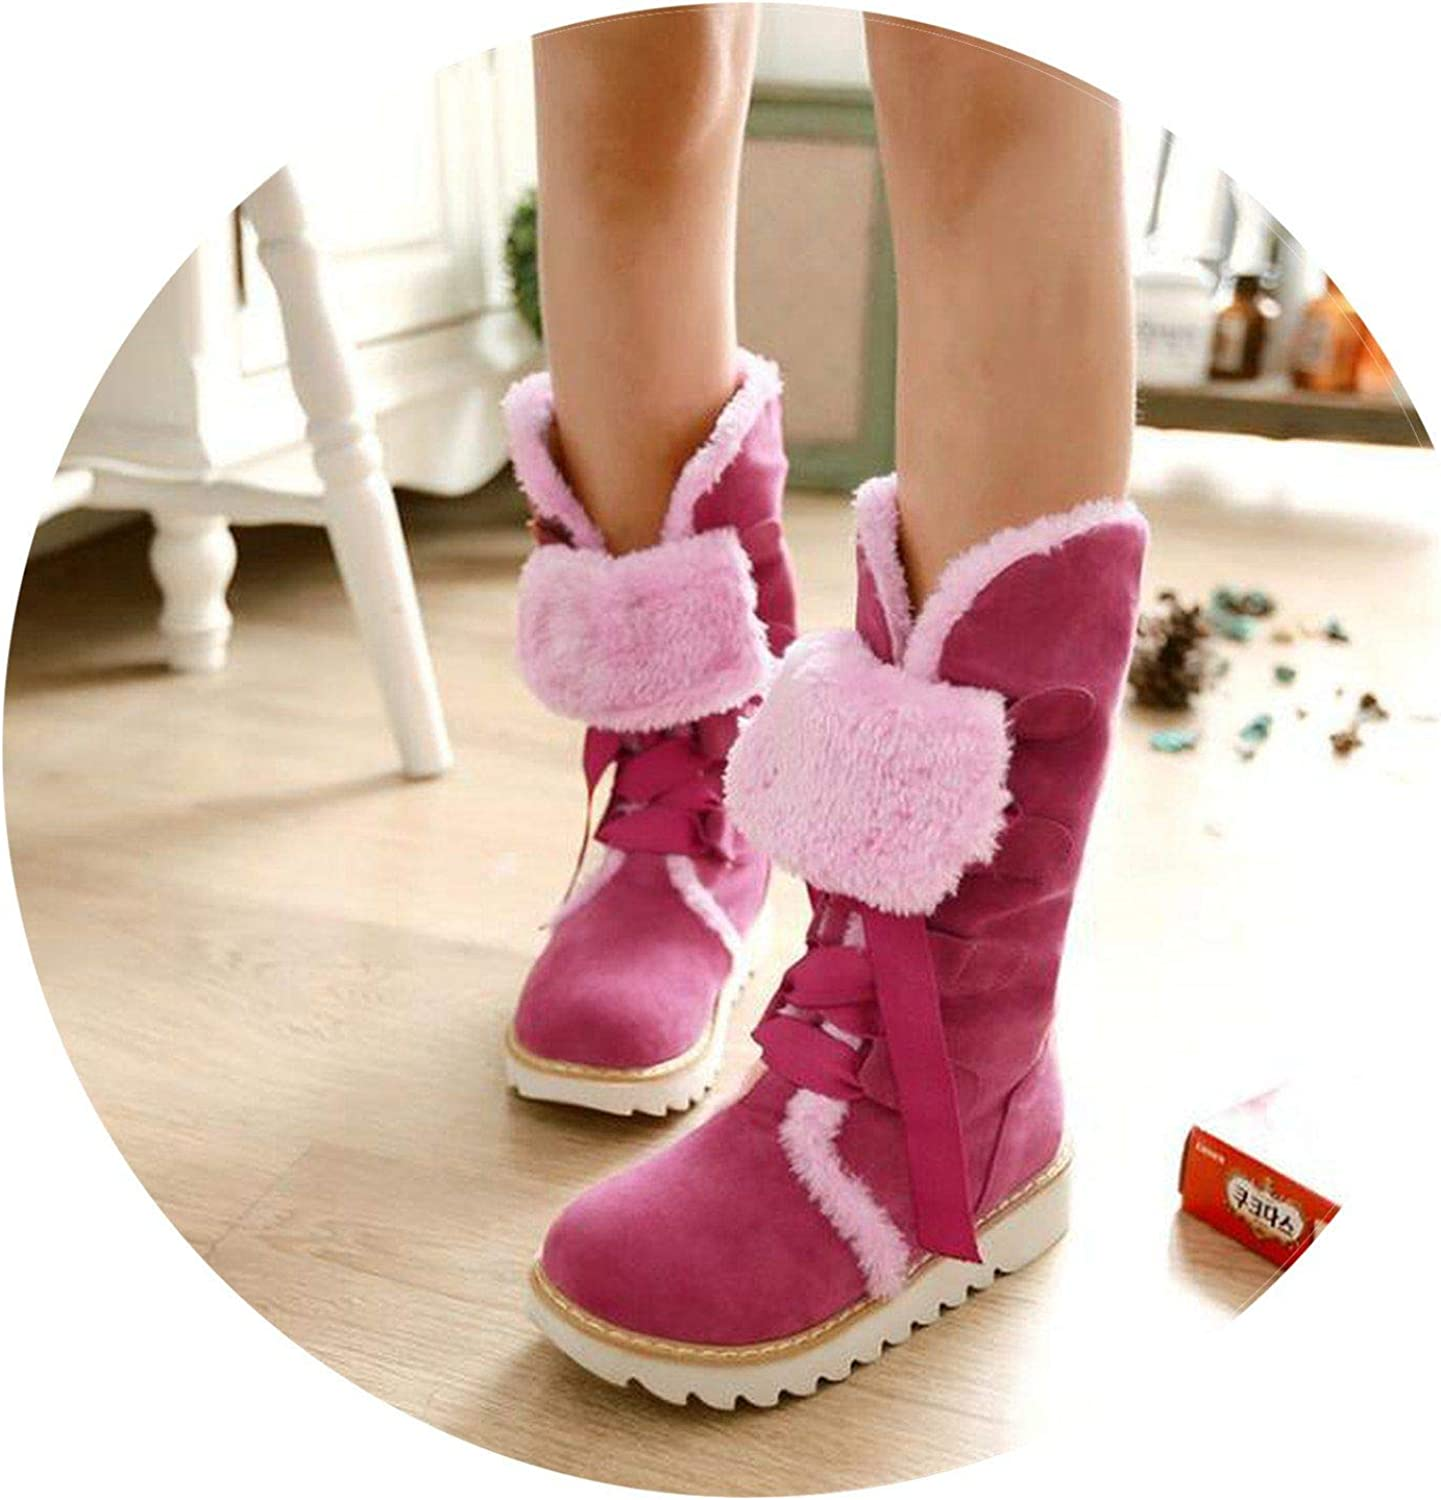 Summer-lavender Autumn Winter Warm Flat Casual Boots Scrub Women Boots Faux Suede Classic Lace-Up Snow Boots